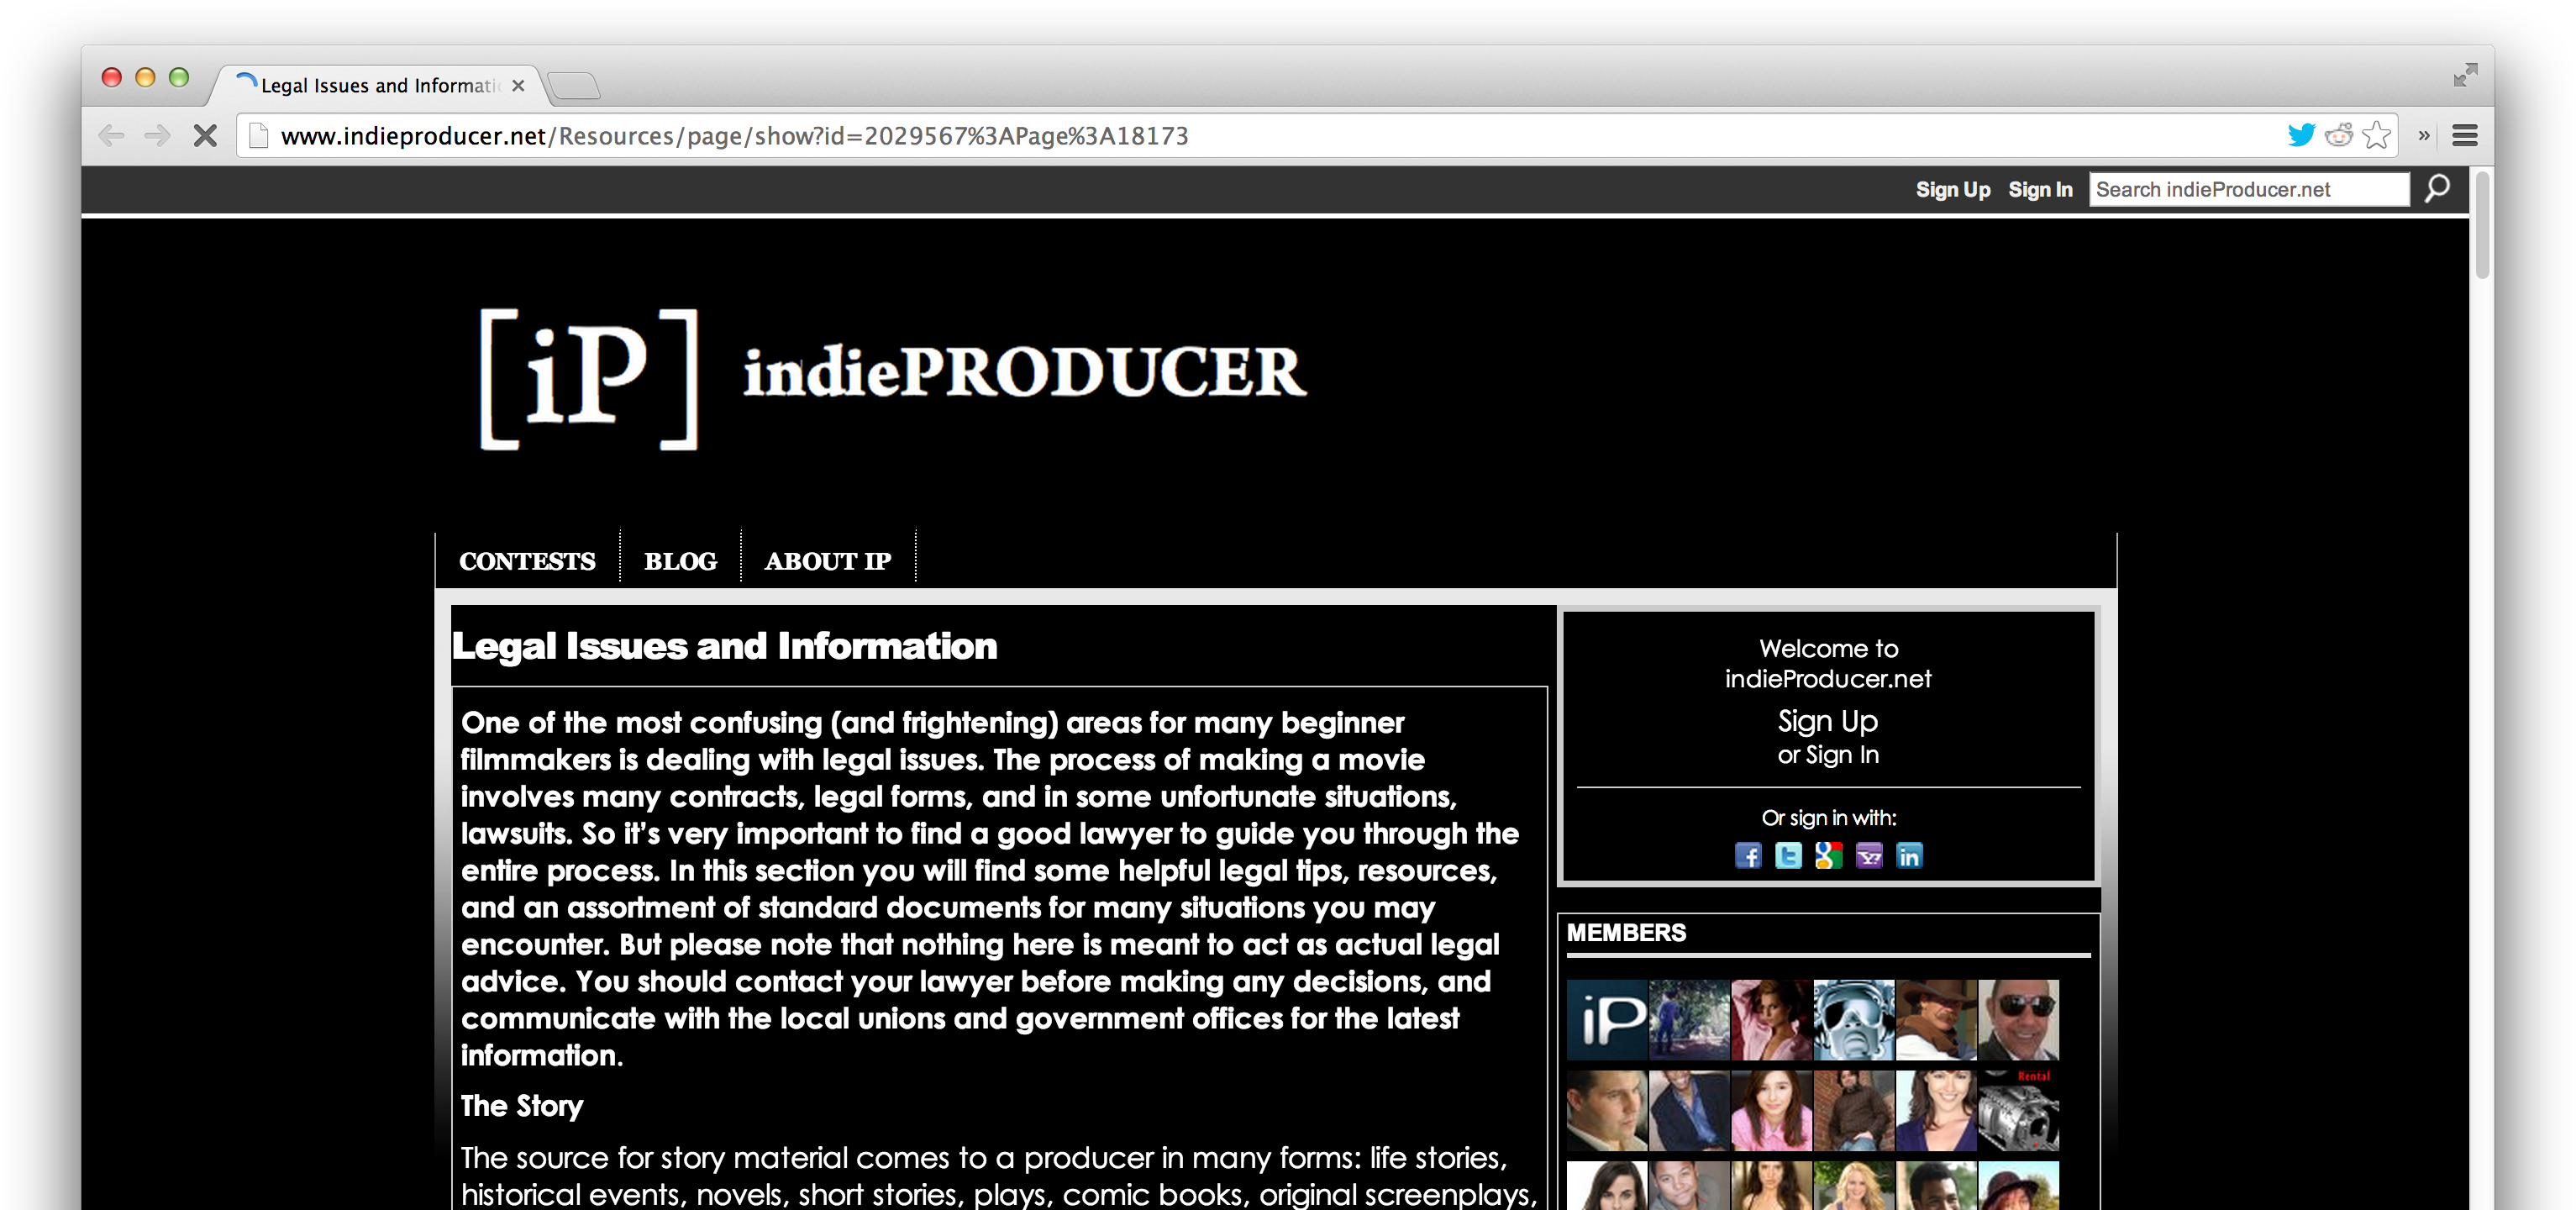 IndieProducer